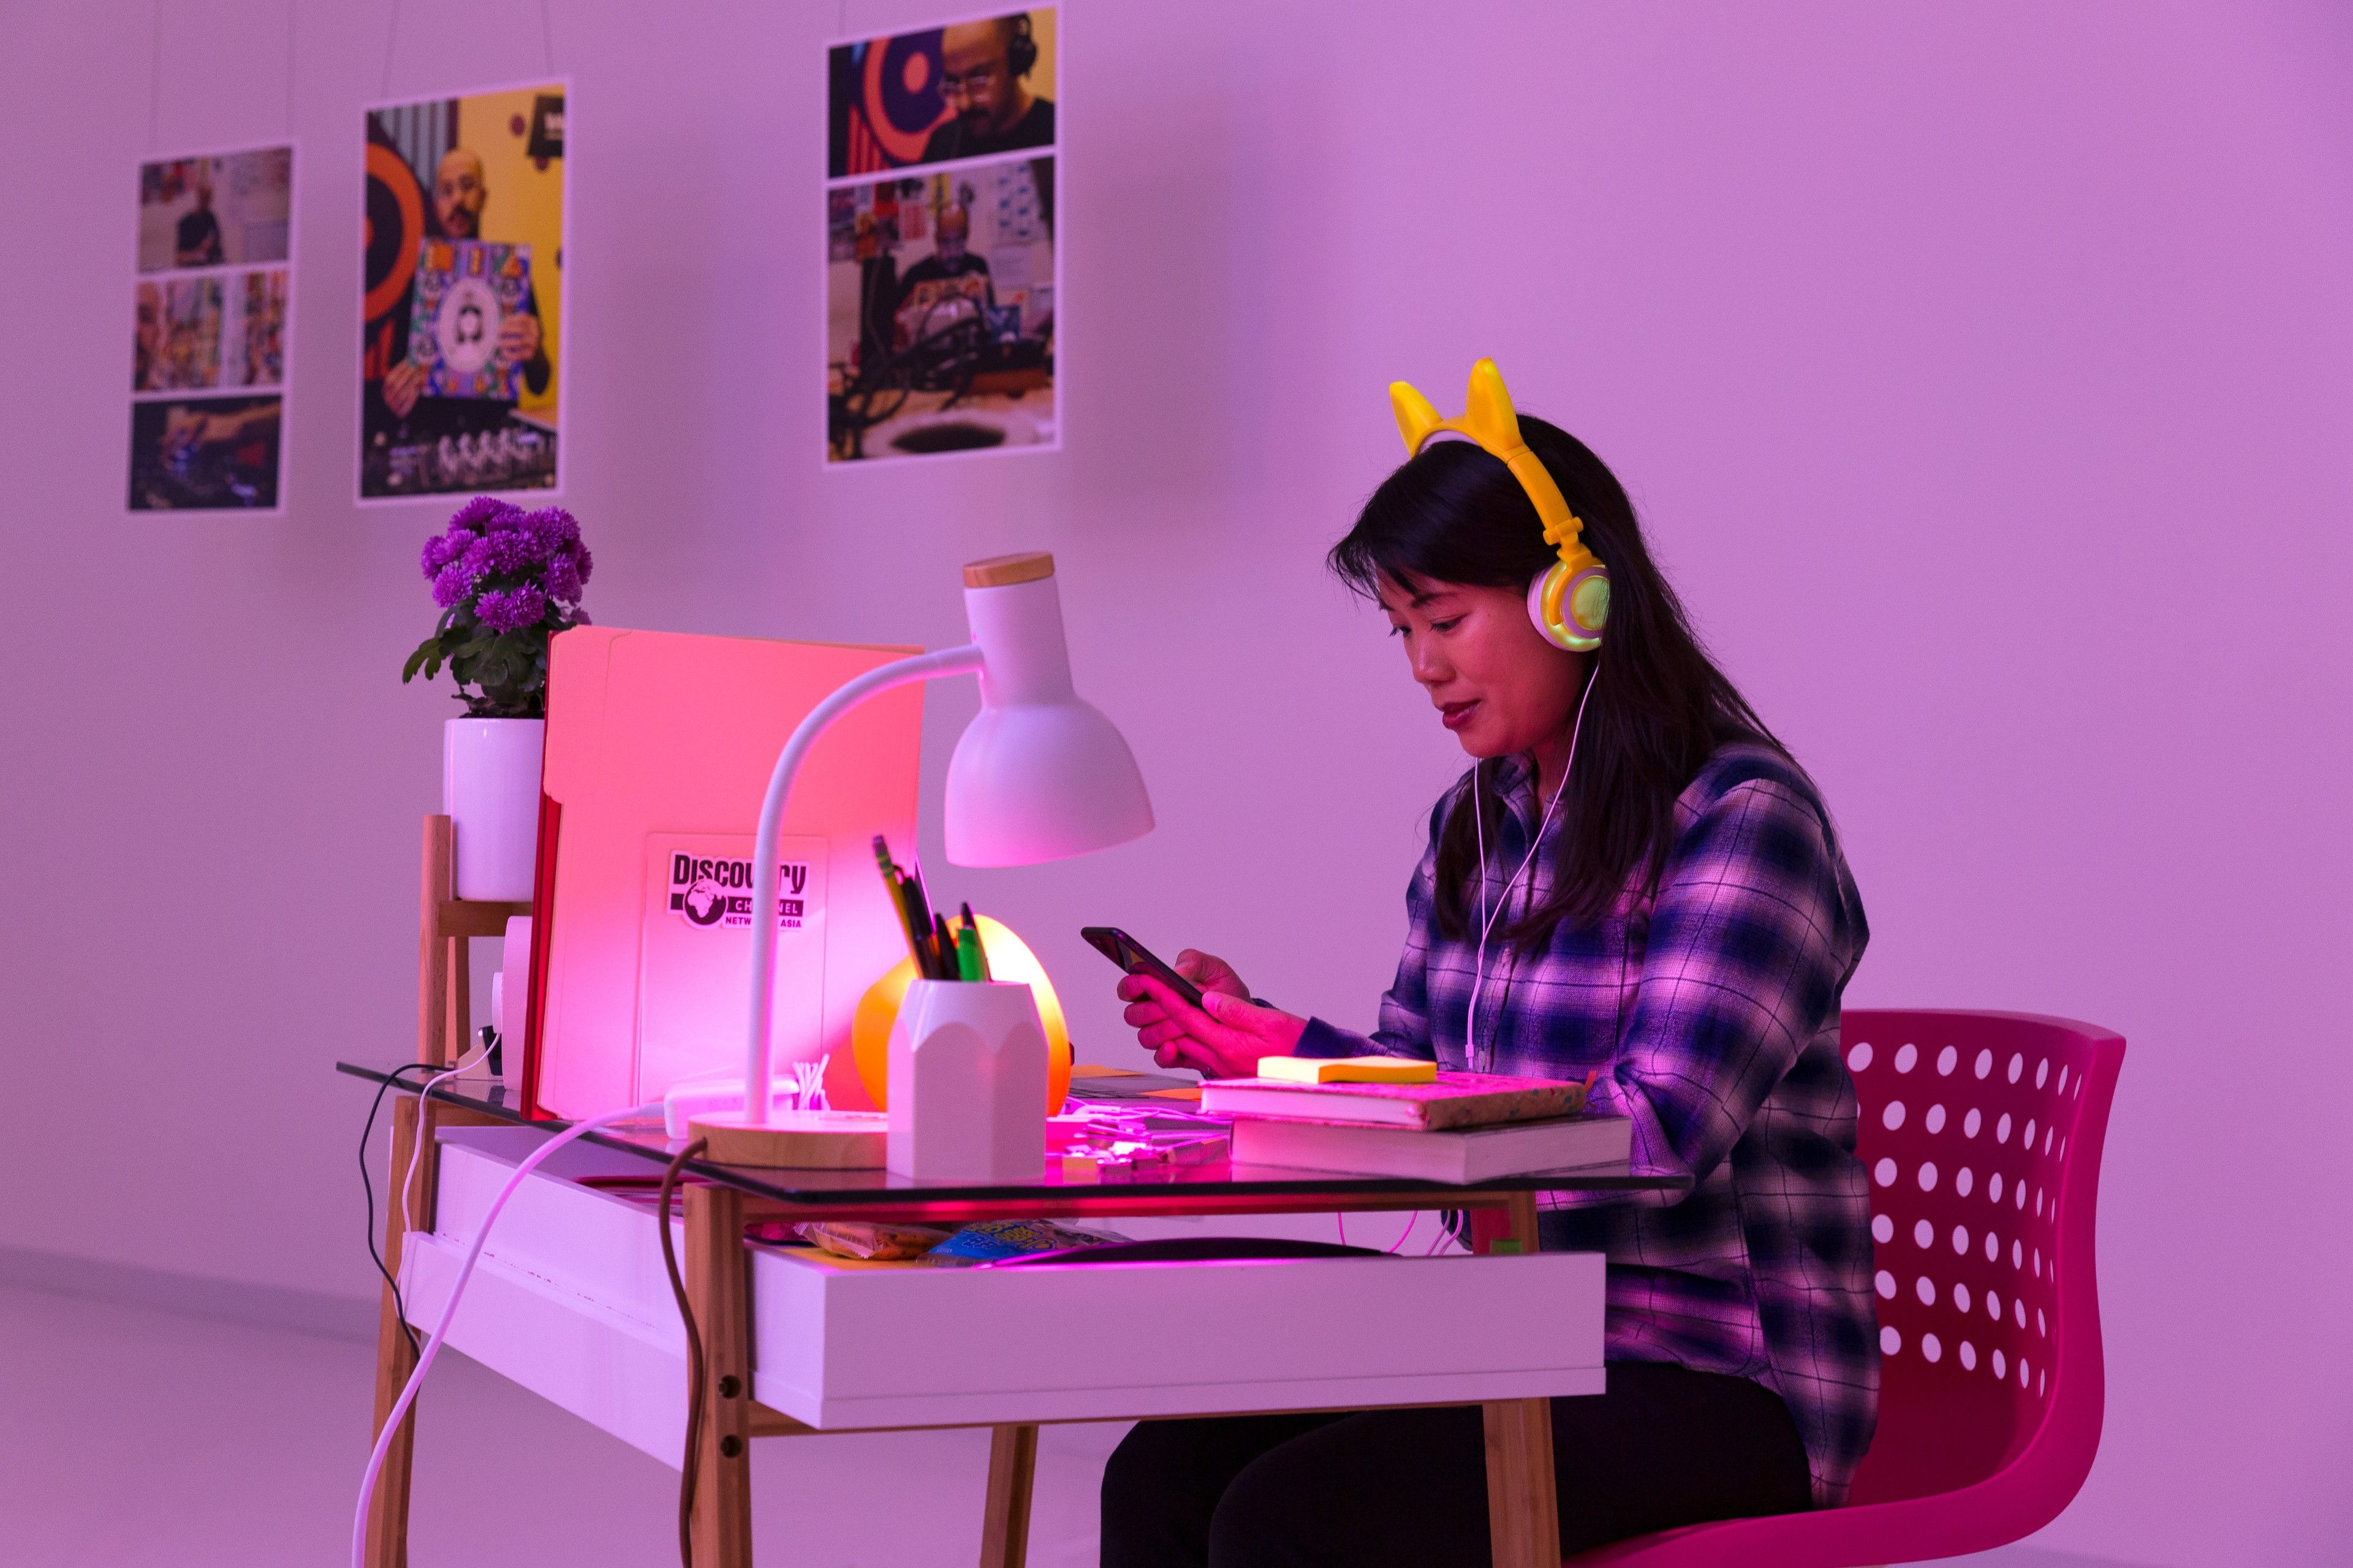 Iris Lin, product designer at Dropbox, interacts with The World@Work – Photograph by Megan Bayley